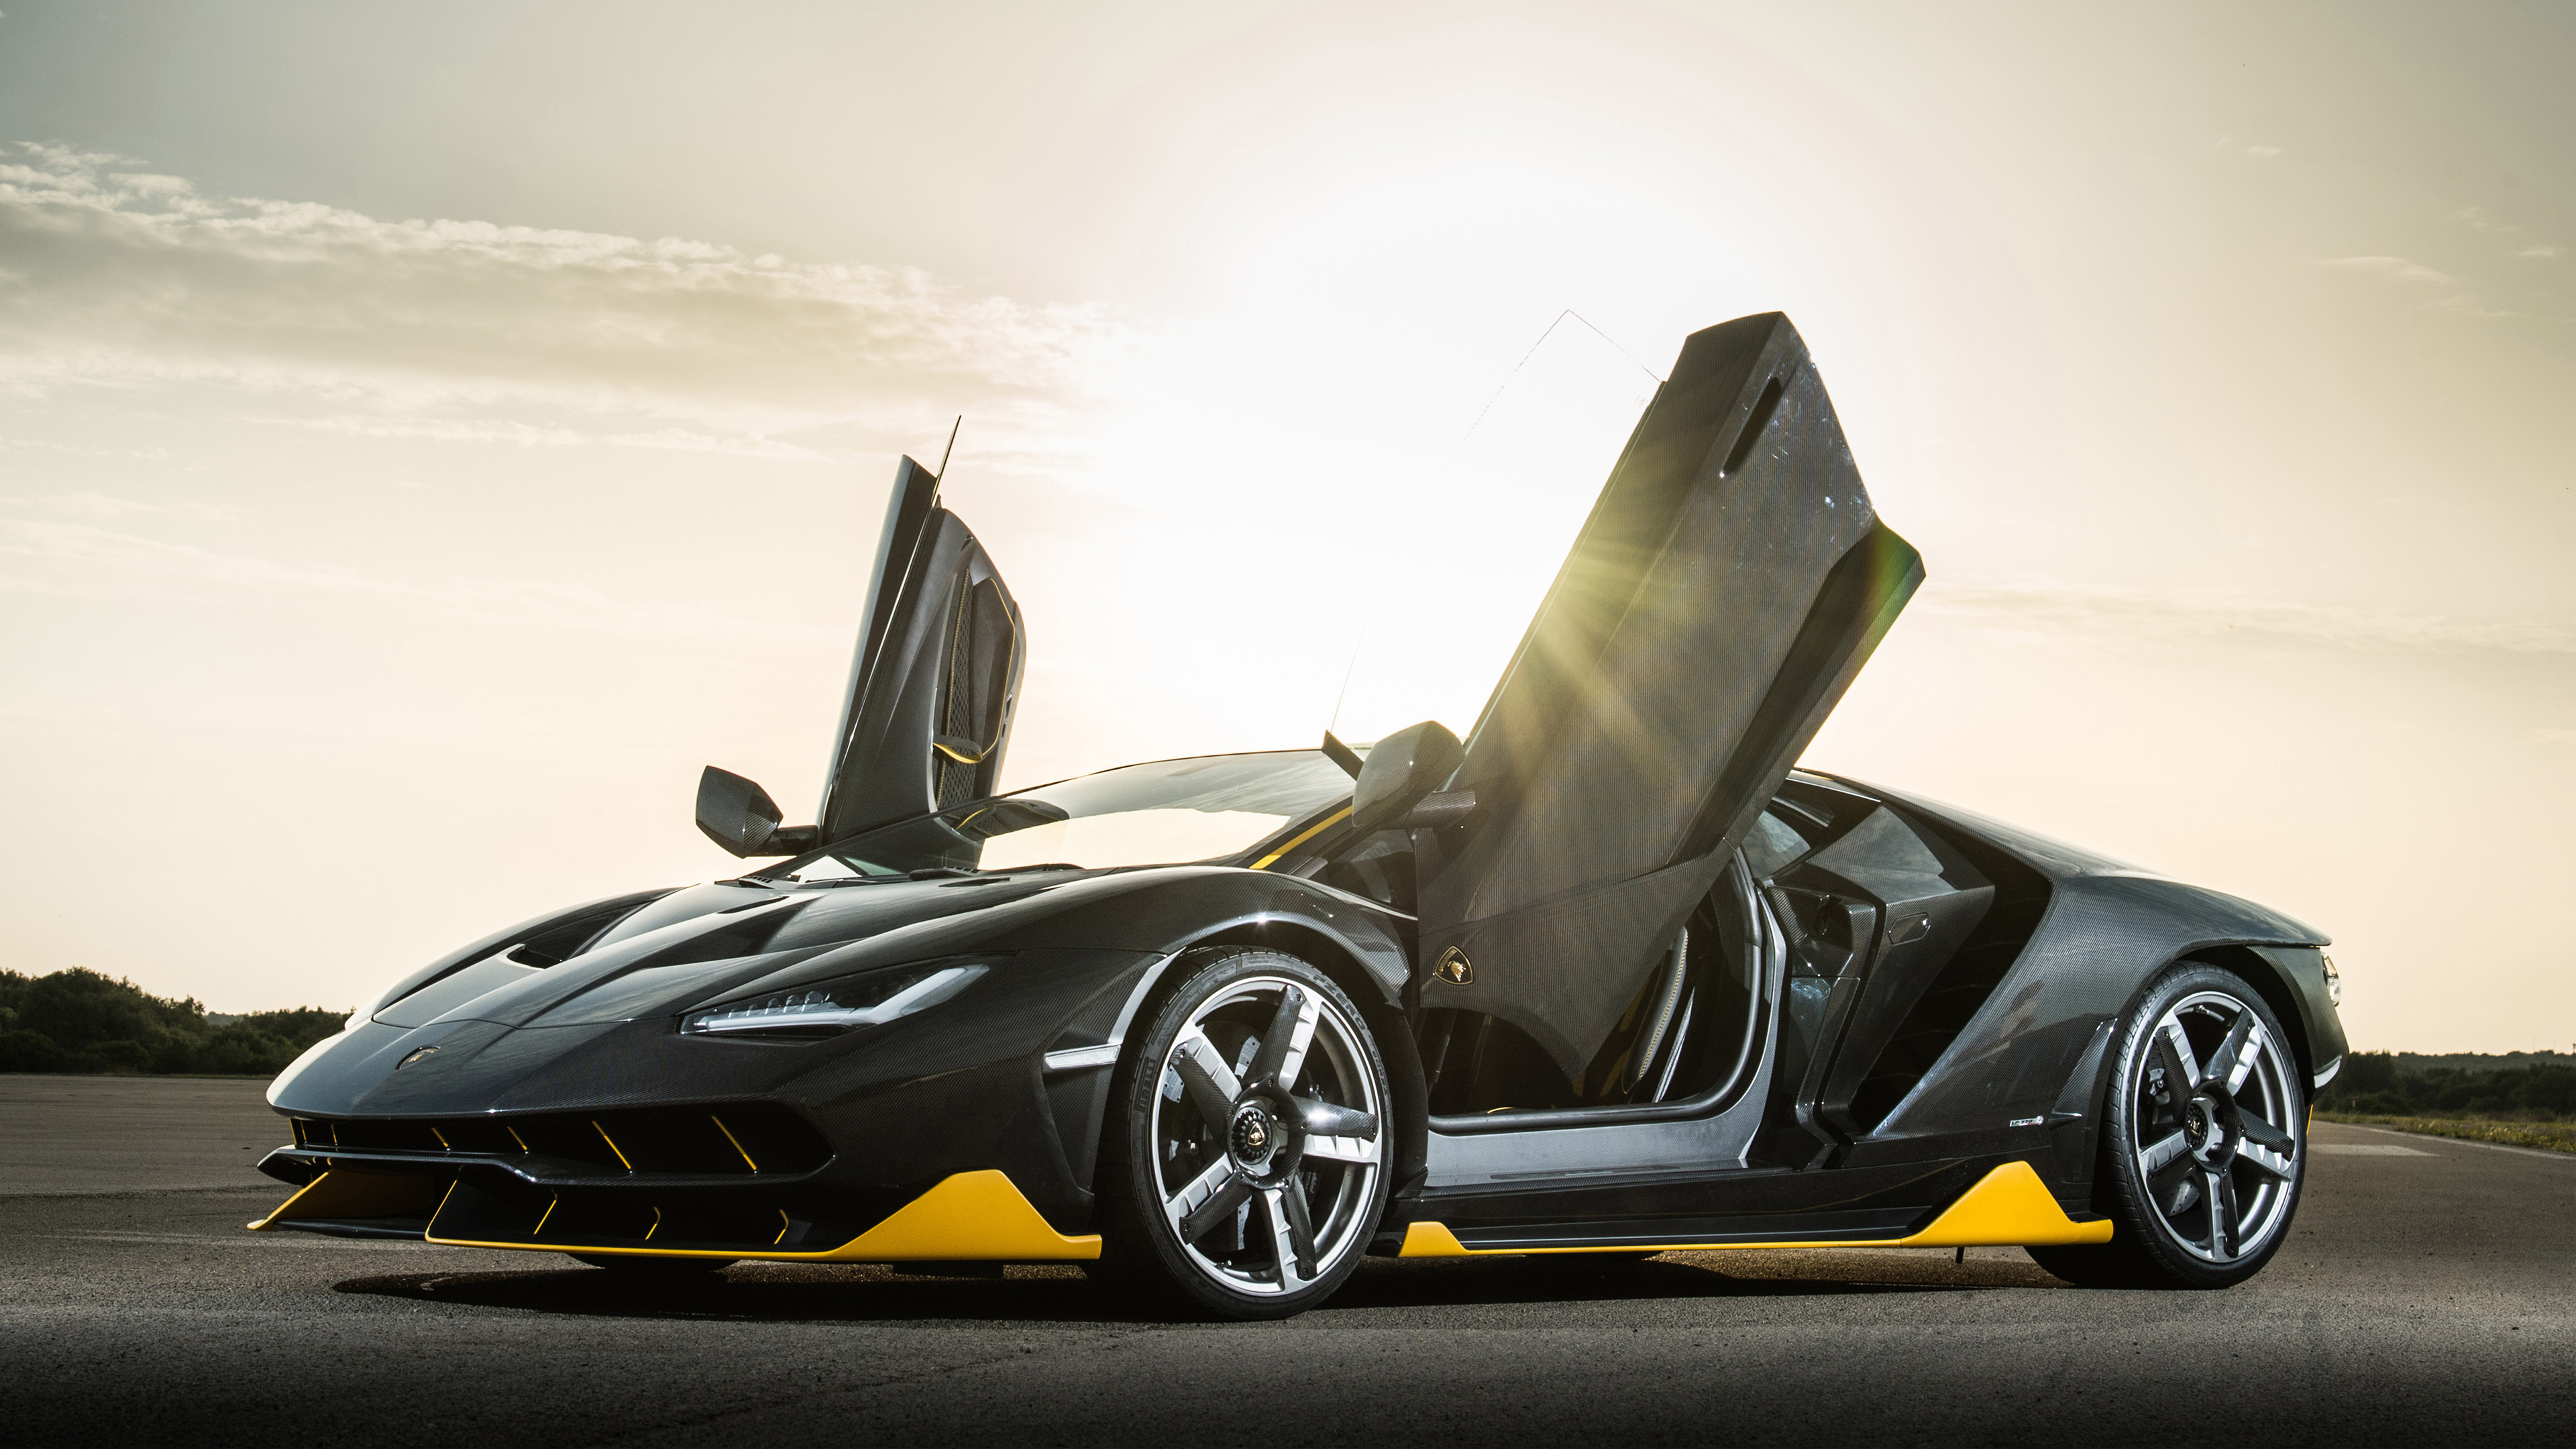 Bentley Car Wallpaper >> Lamborghini Centenario 4K Wallpaper | HD Car Wallpapers | ID #6771